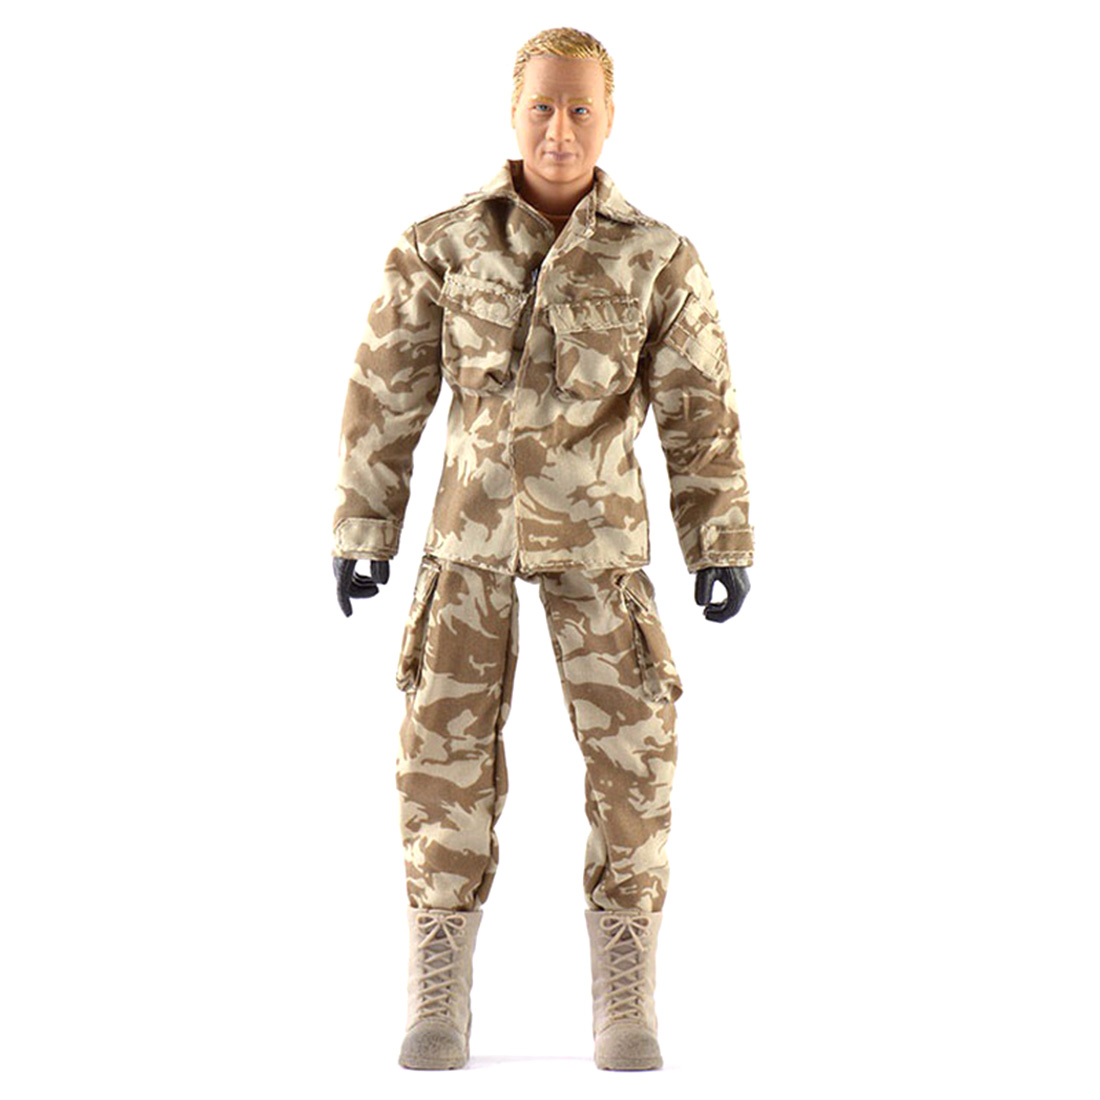 1/6 Scale Movable Soldier Action Figure with Accessories S.A.S Figure Military Soldier Model Kit for Military Fans Present Gift